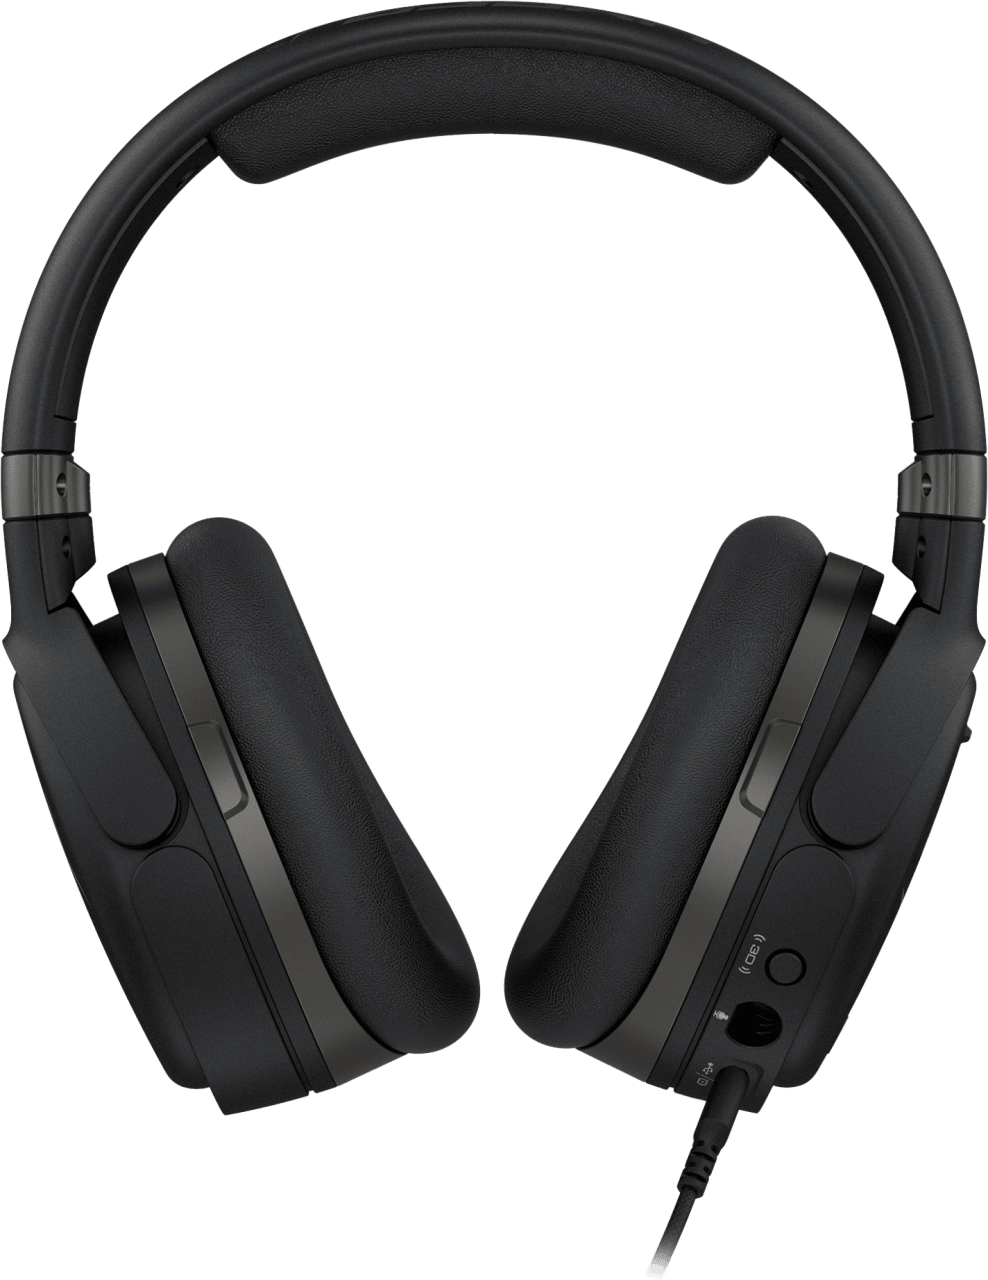 Black HyperX Cloud Orbit S Over-ear Gaming Headphones.3